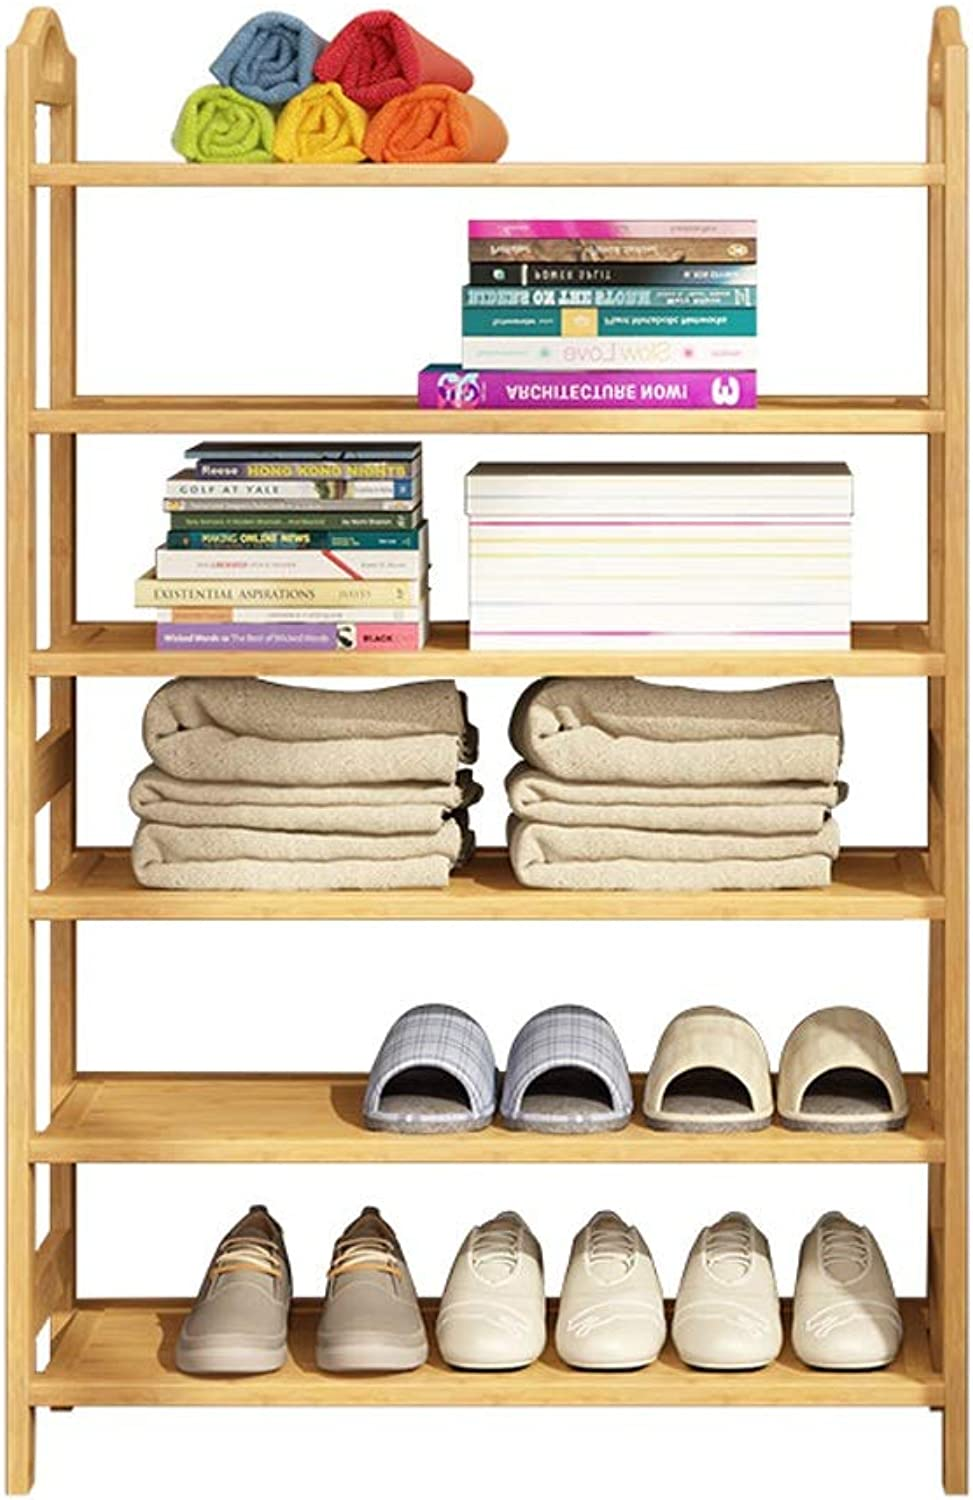 shoes Rack Simple shoes Rack dustproof Economic shoes Rack Bamboo Multi-Layer shoes Rack-Bedroom Storage Wooden Frame shoes Rack shoes Organizer, Storage Shelf, Ideal for Entryway